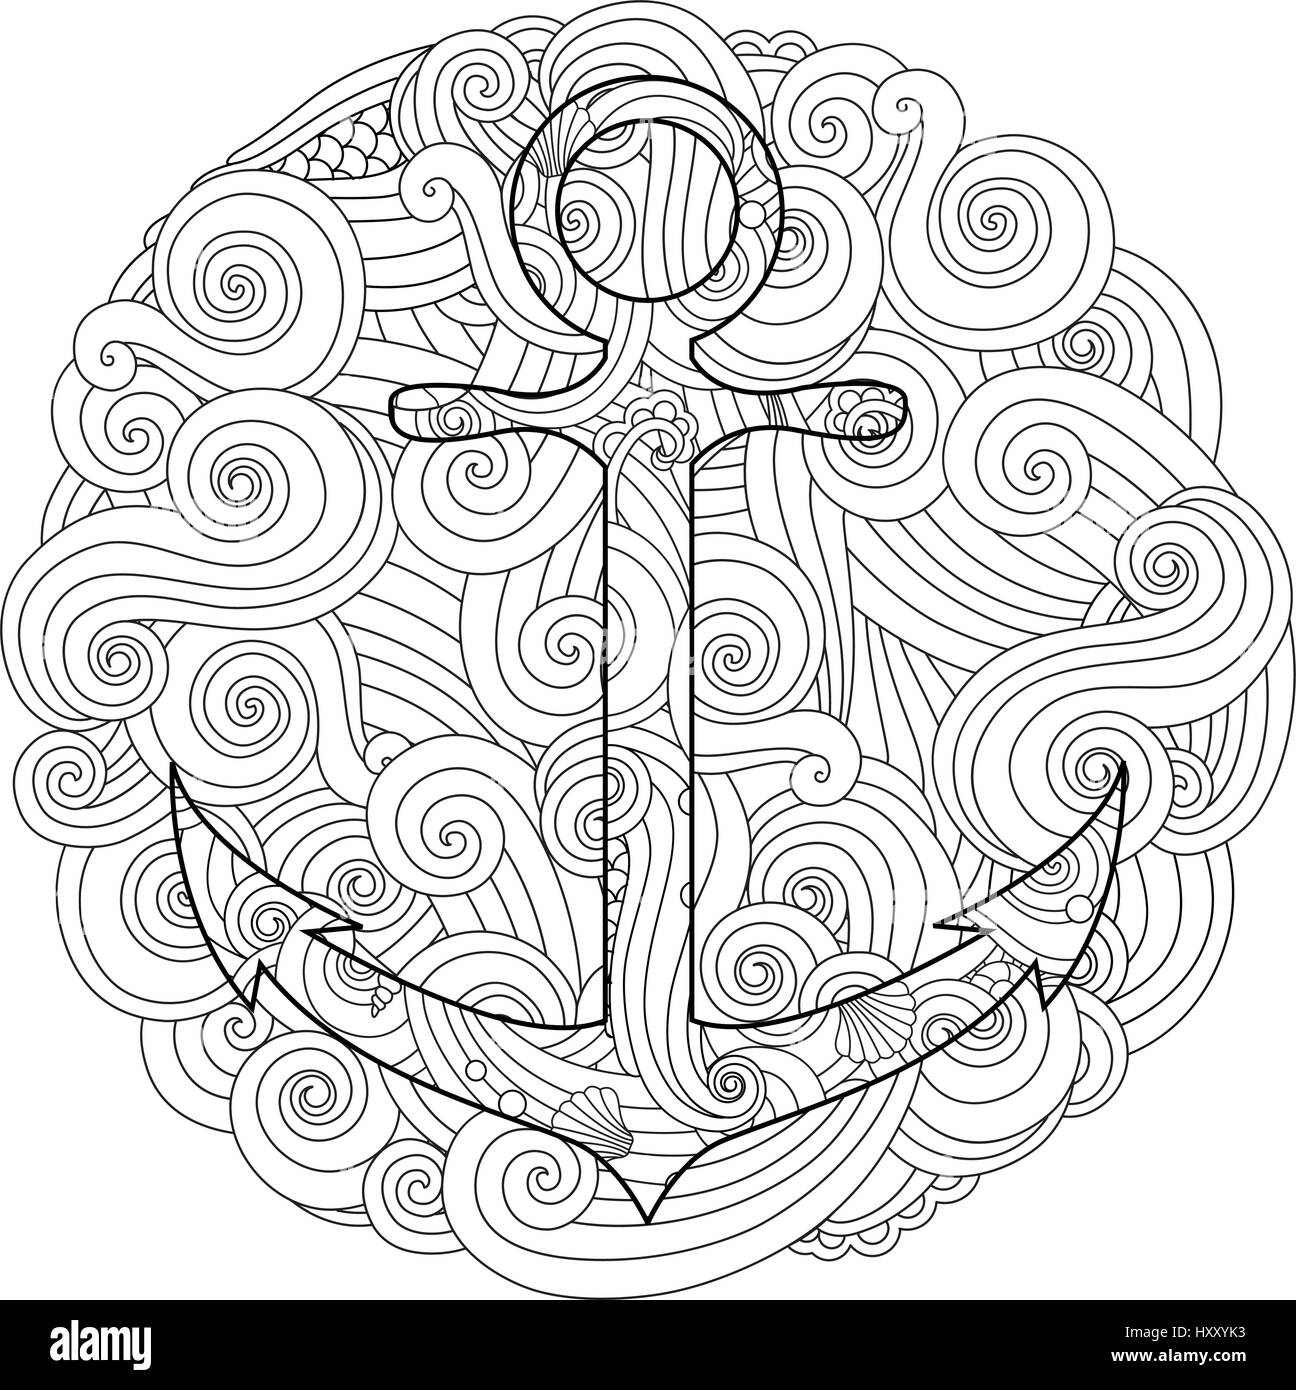 Anchor Coloring Pages For Adults